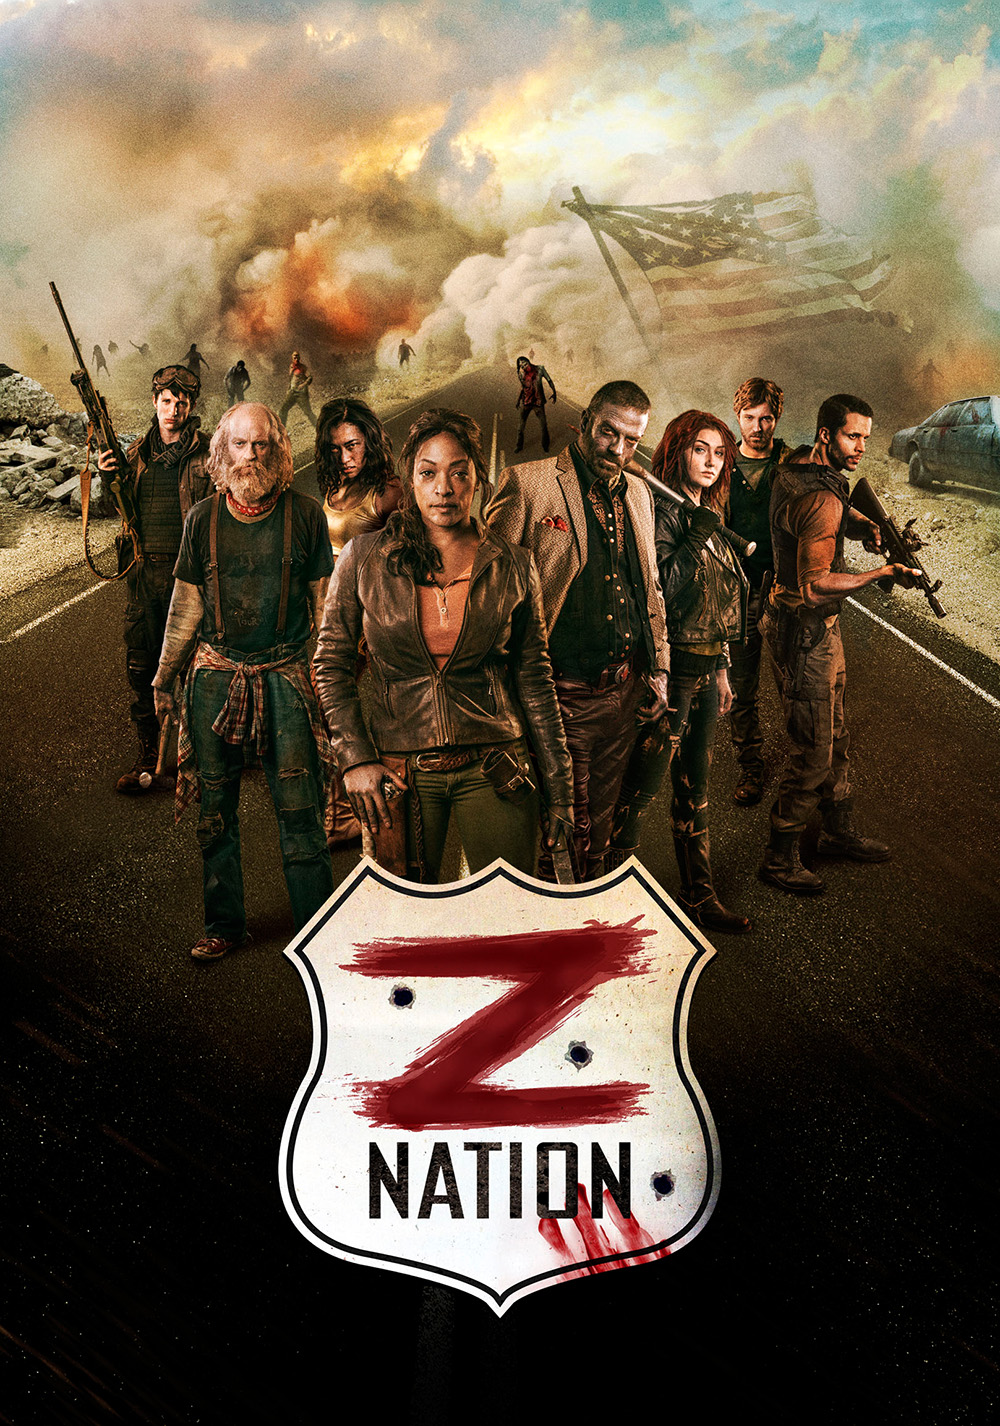 Z Nation: Seasons 2-5 (SyFy, Netflix)